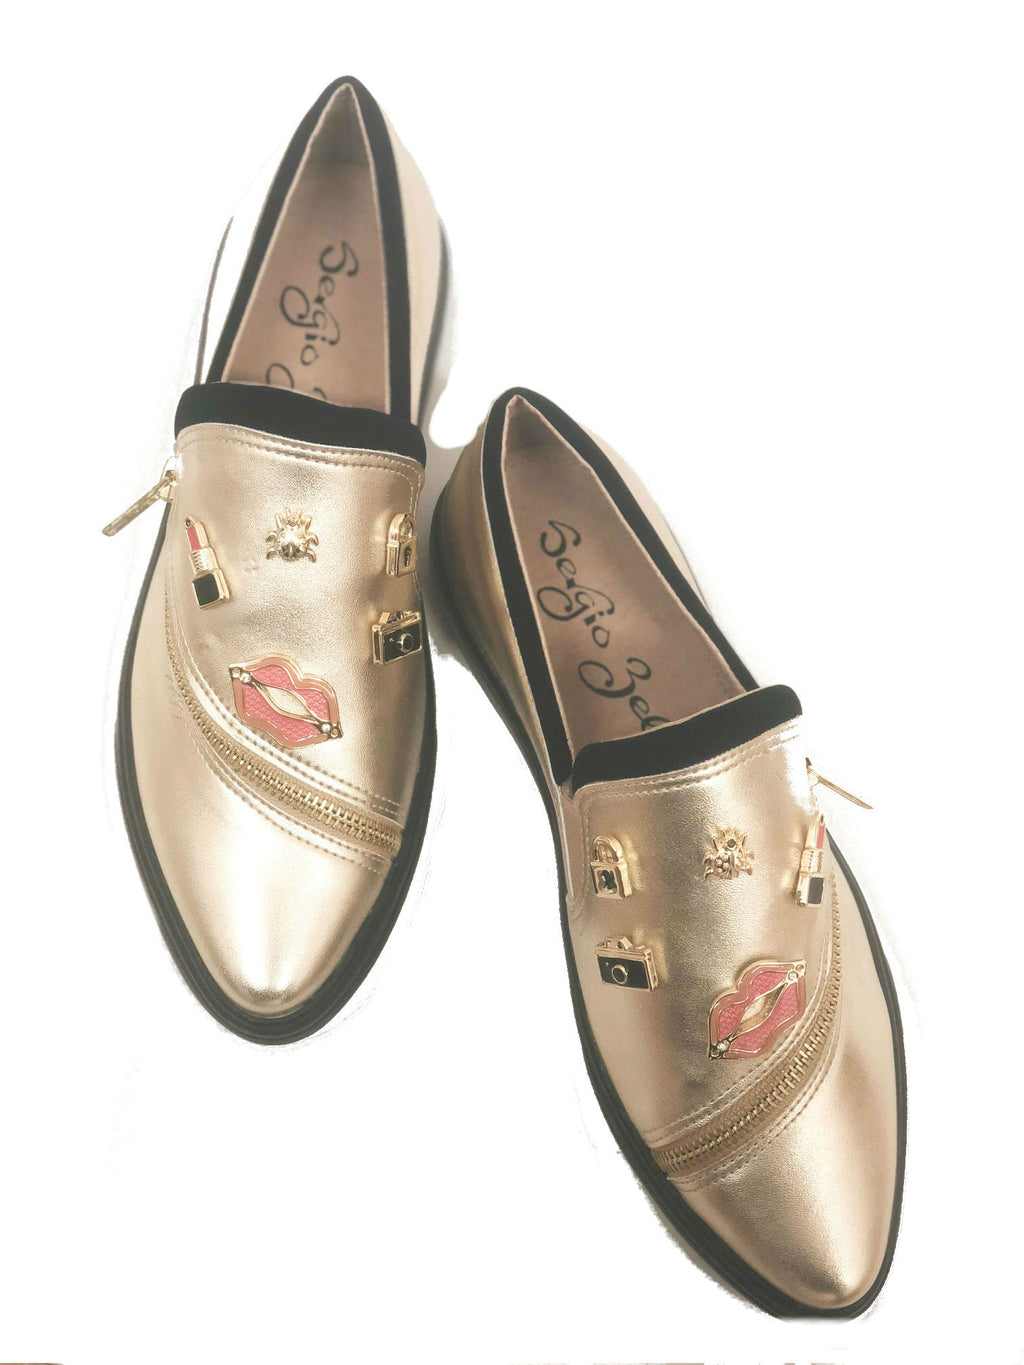 womens leather metallic slip flat comfort on loafer with zipper detail and embellished